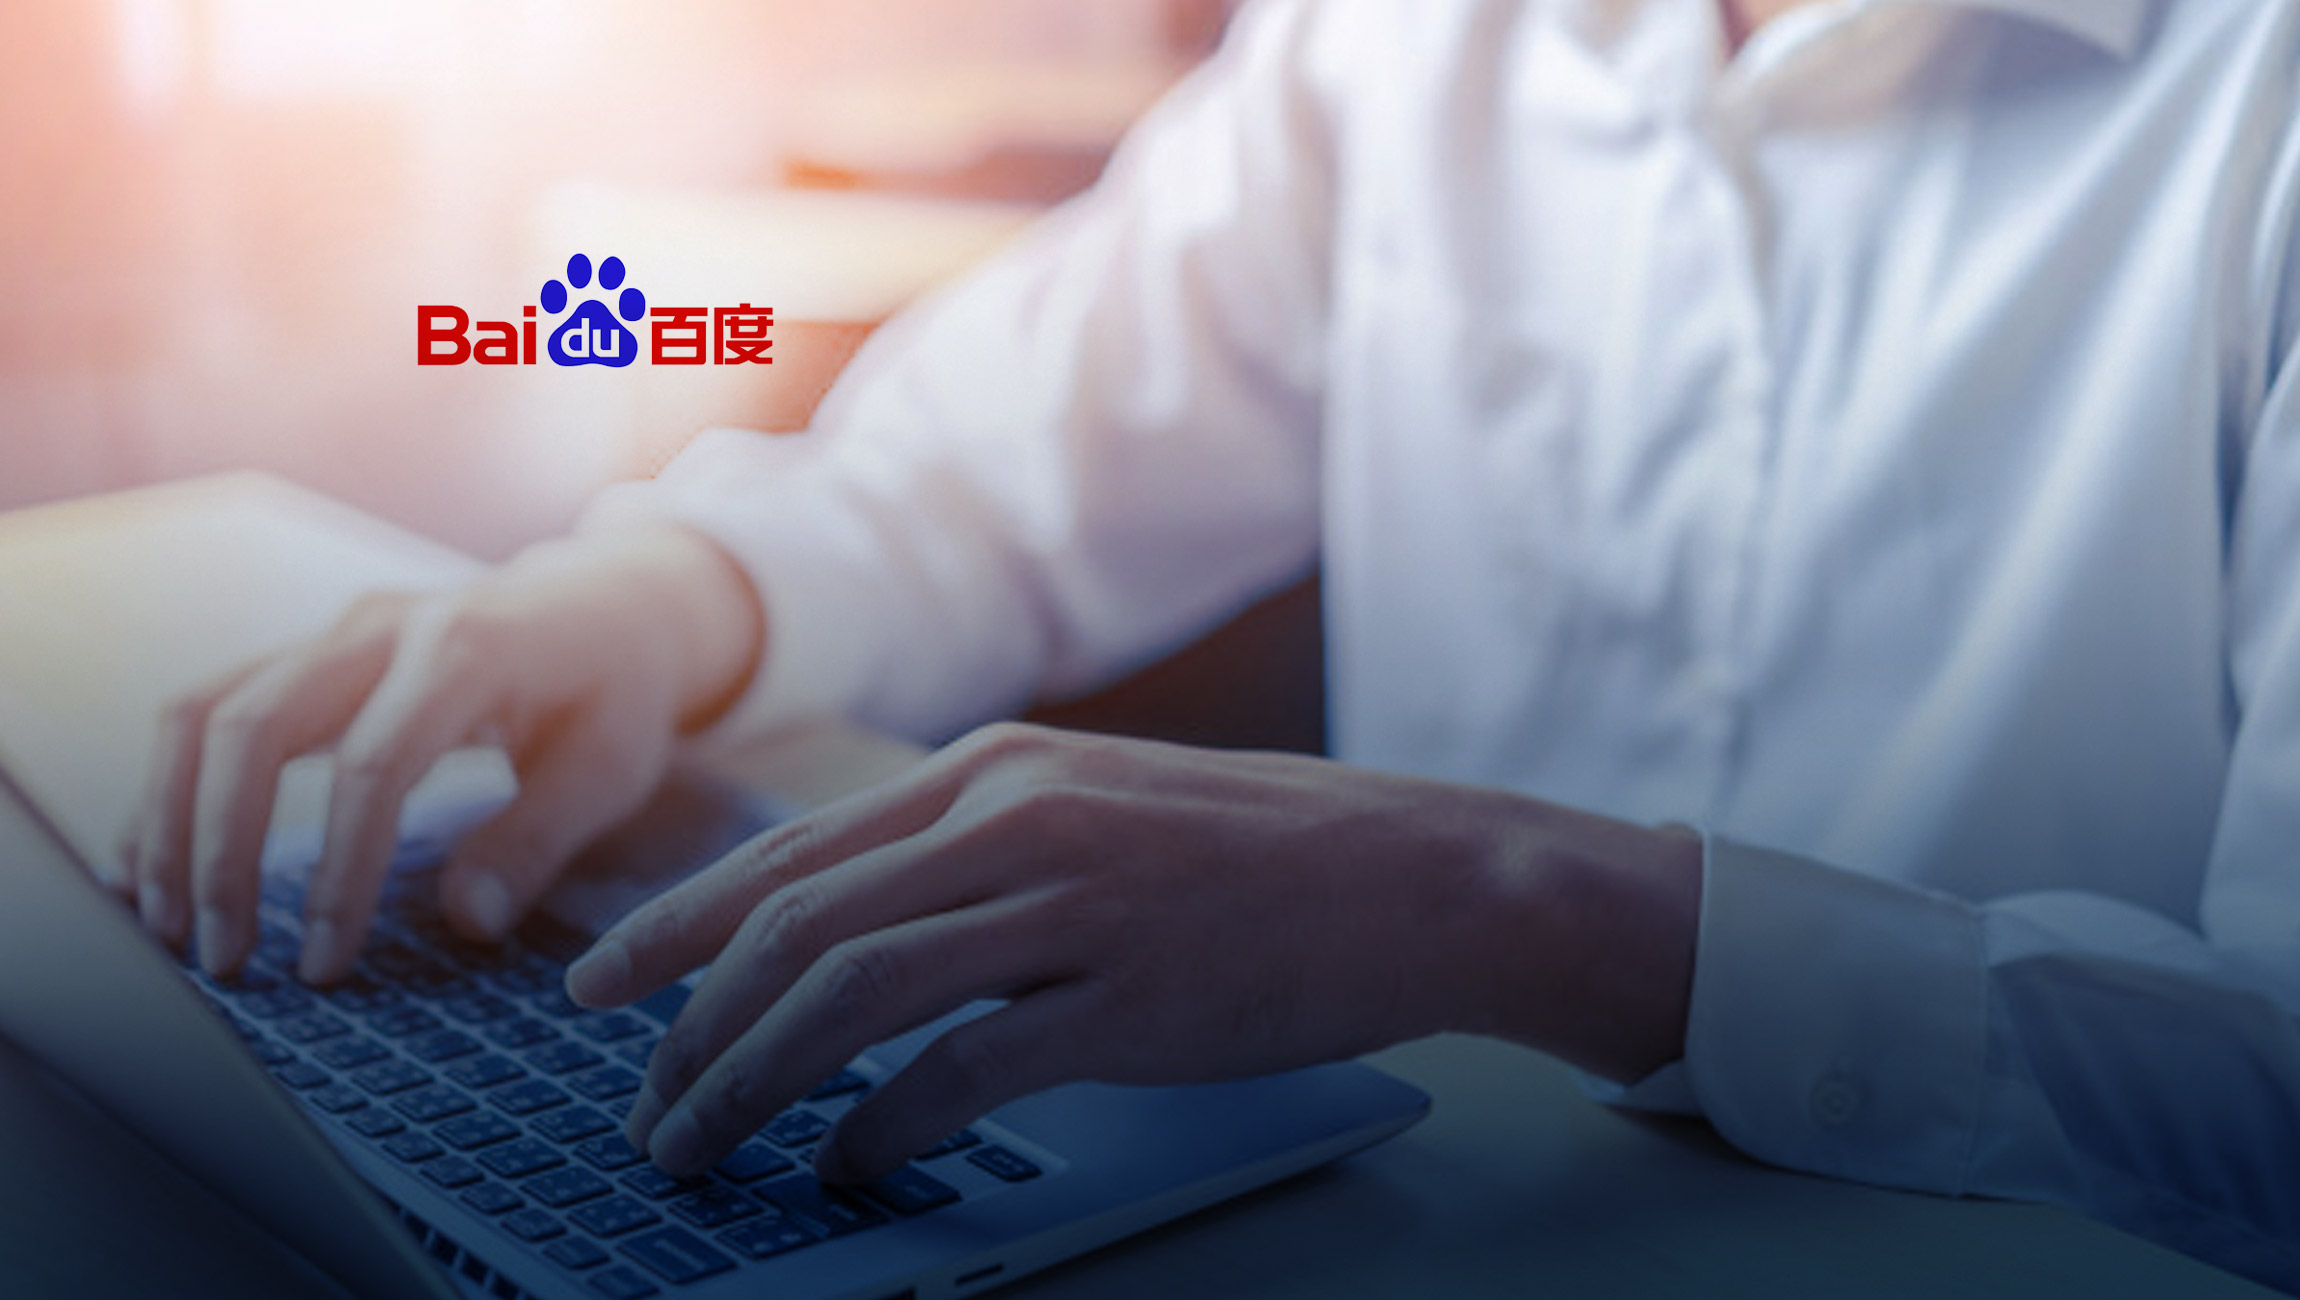 Baidu Leads China in Artificial Intelligence Patents, is Poised to Bring About Intelligent Transformation